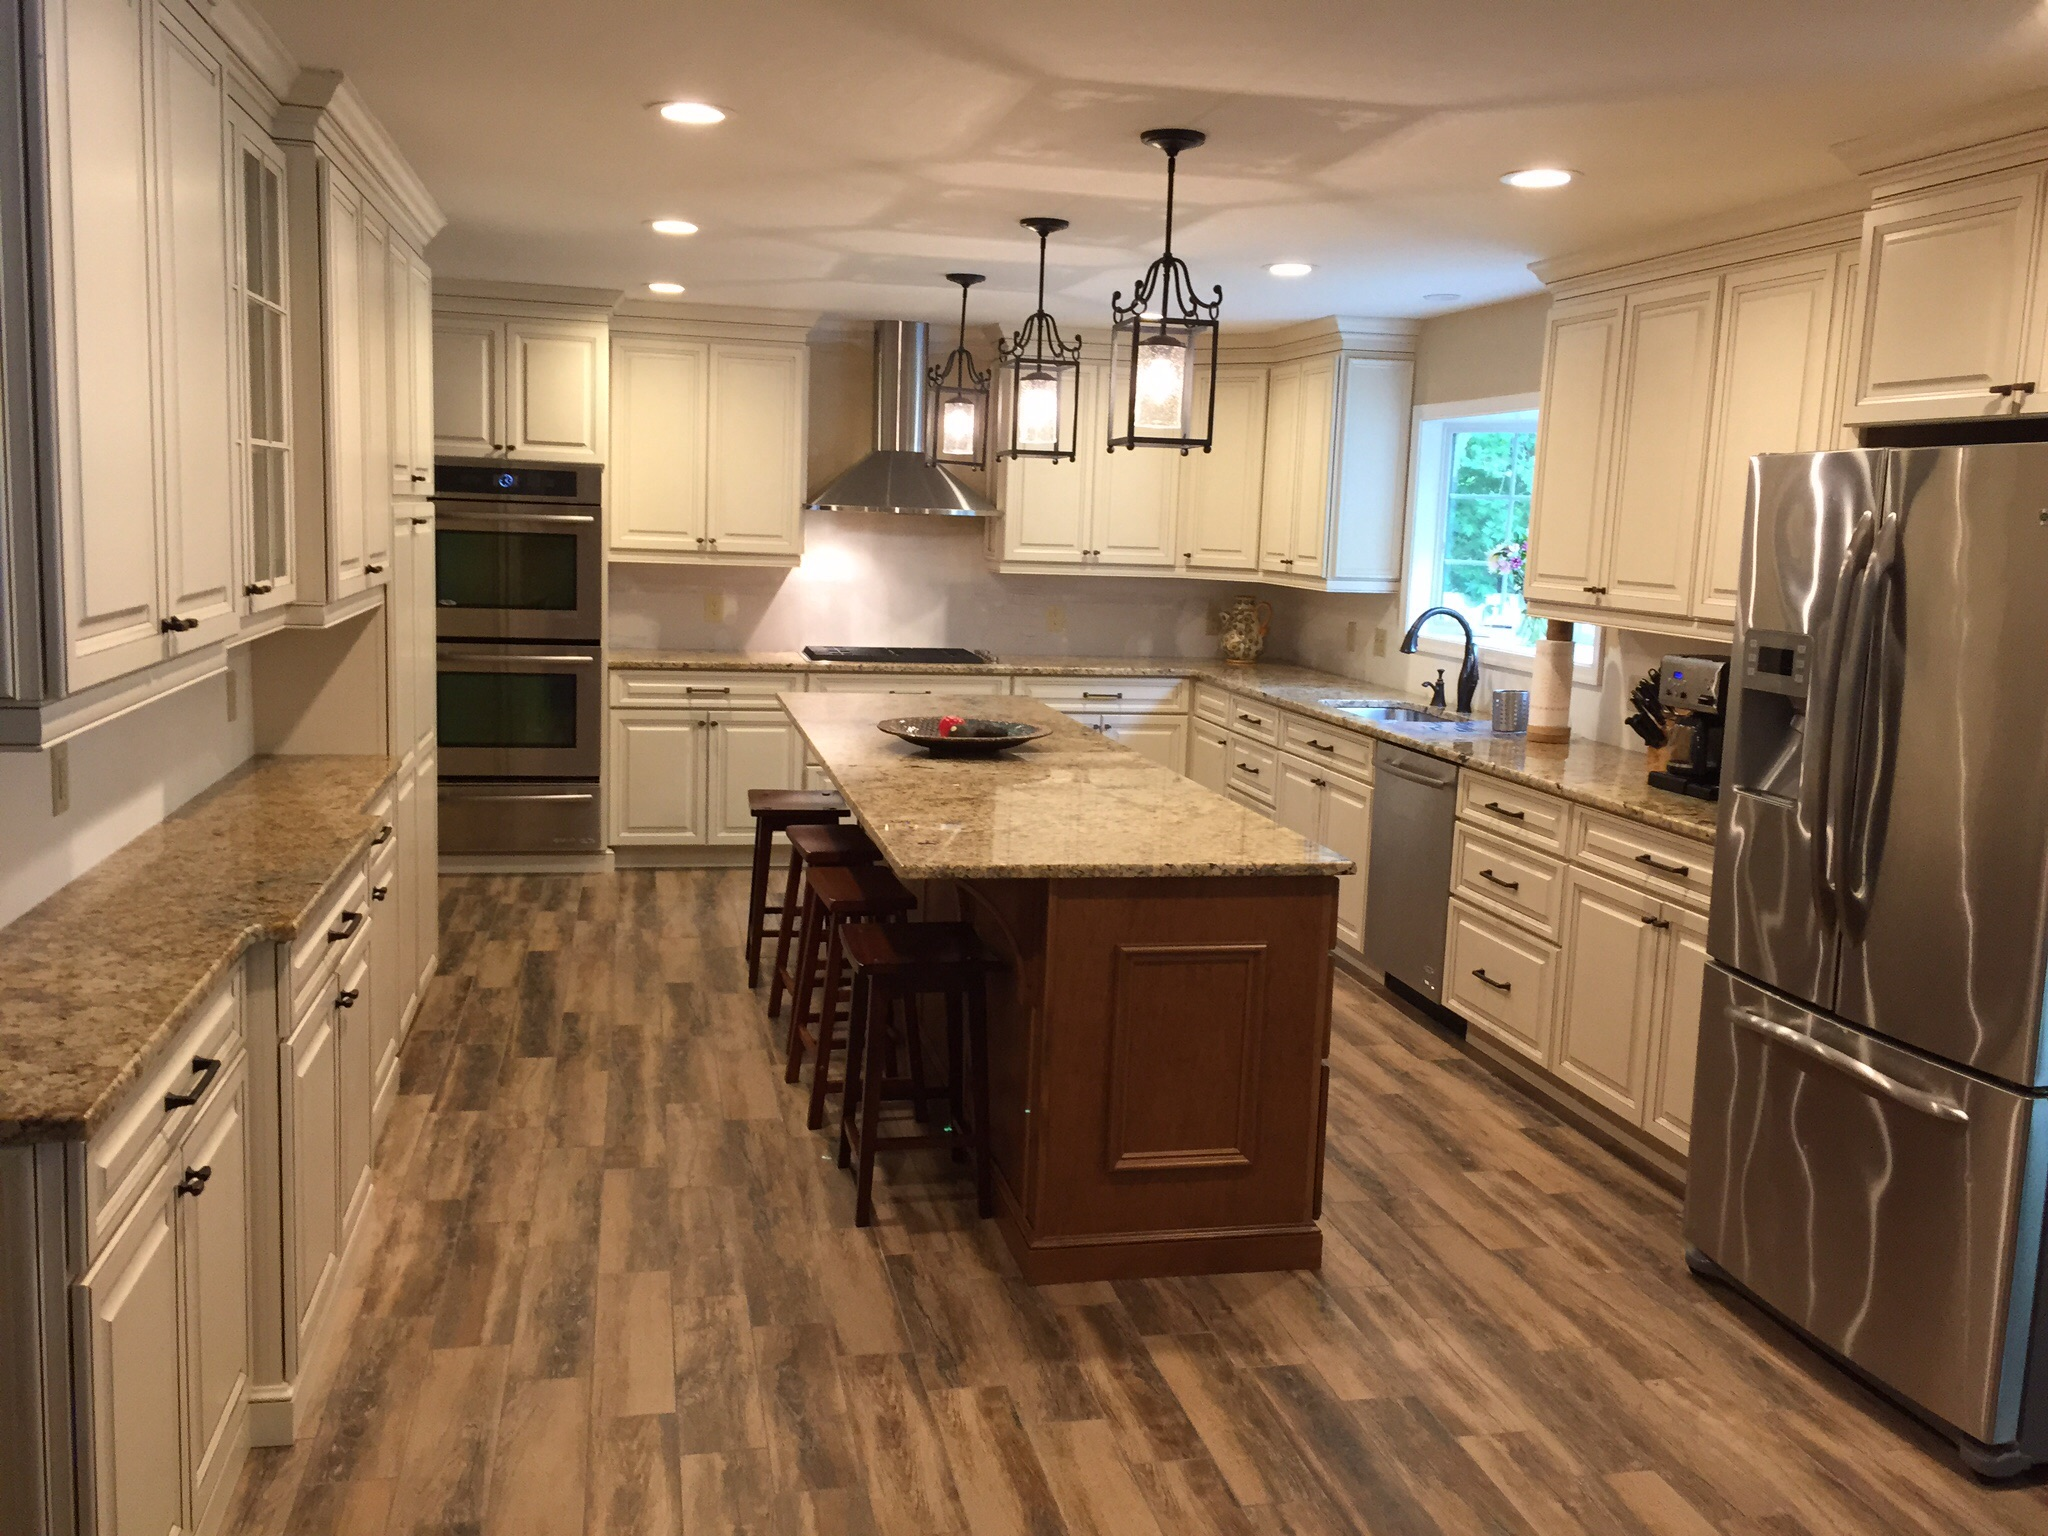 A master builders kitchen remodeling a master builders for I kitchens and renovations